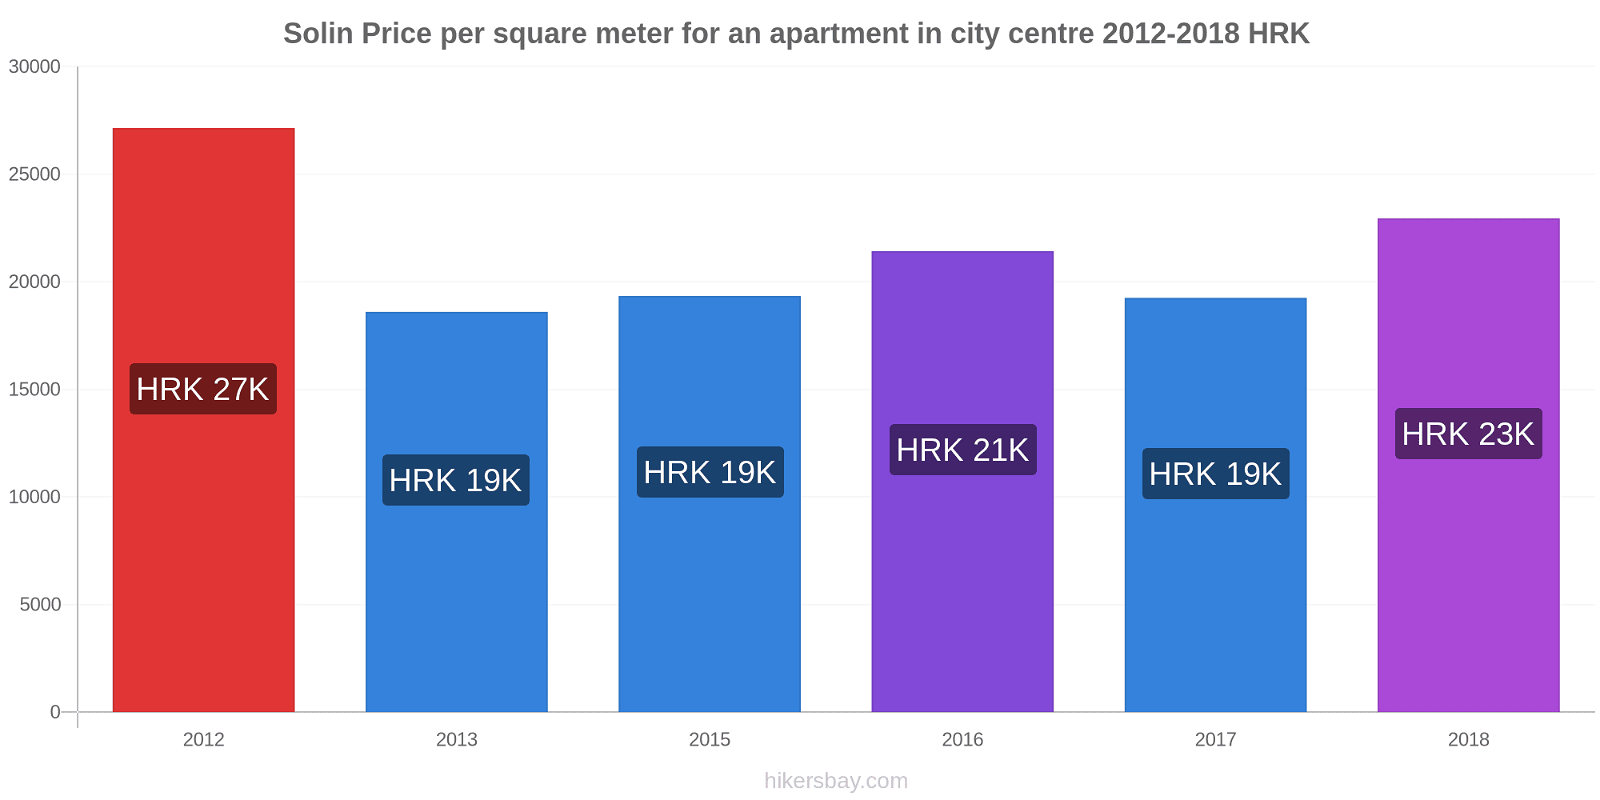 Solin price changes Price per square meter for an apartment in city centre hikersbay.com